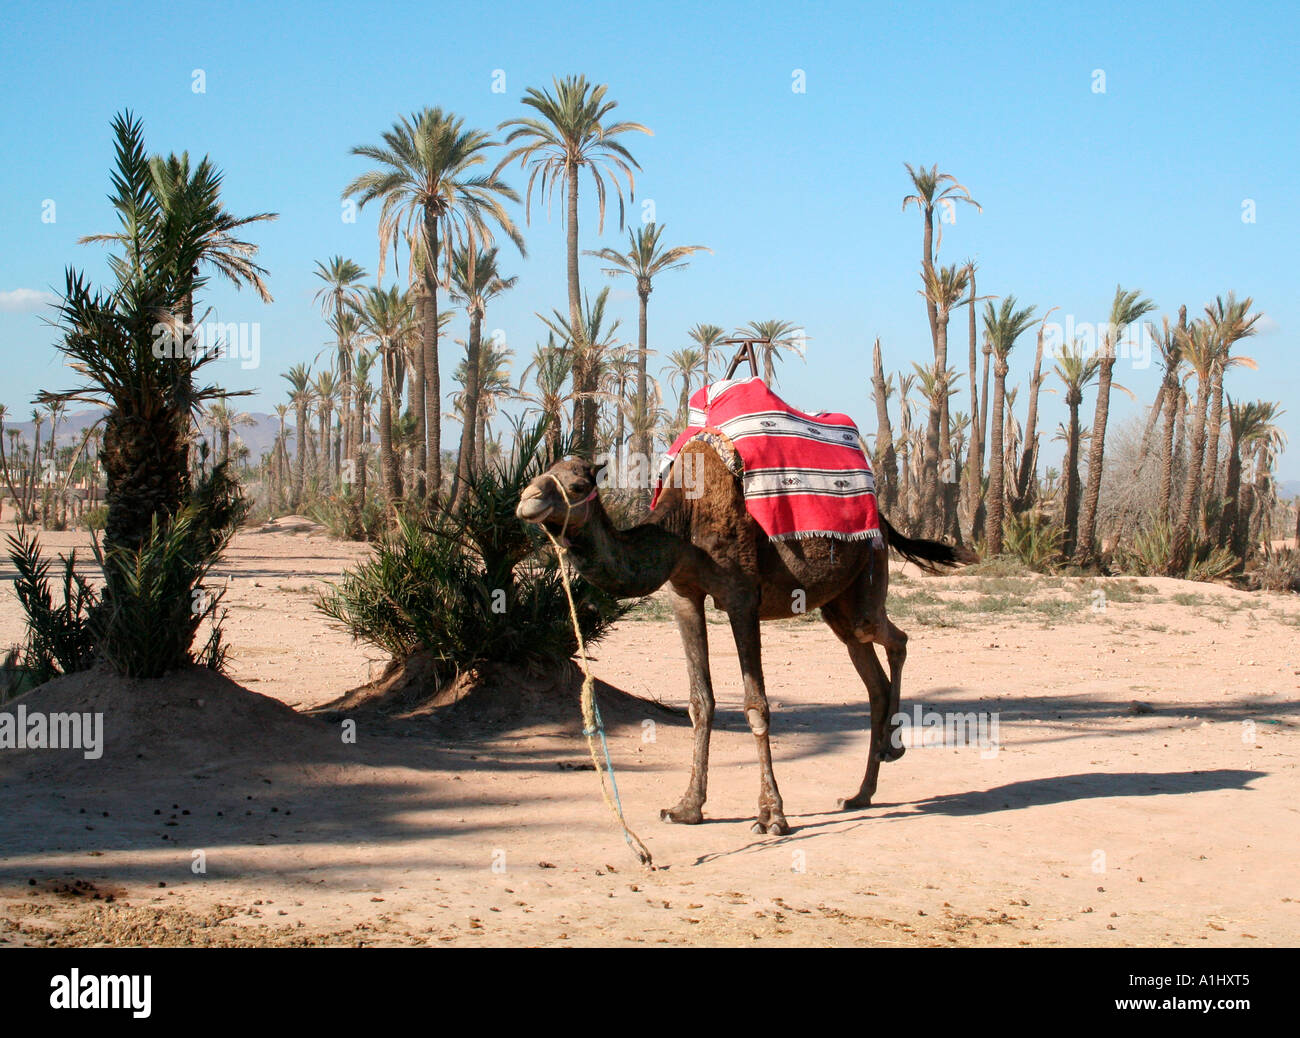 Camel with colourful blanket, The Palmeraie, Marrakech